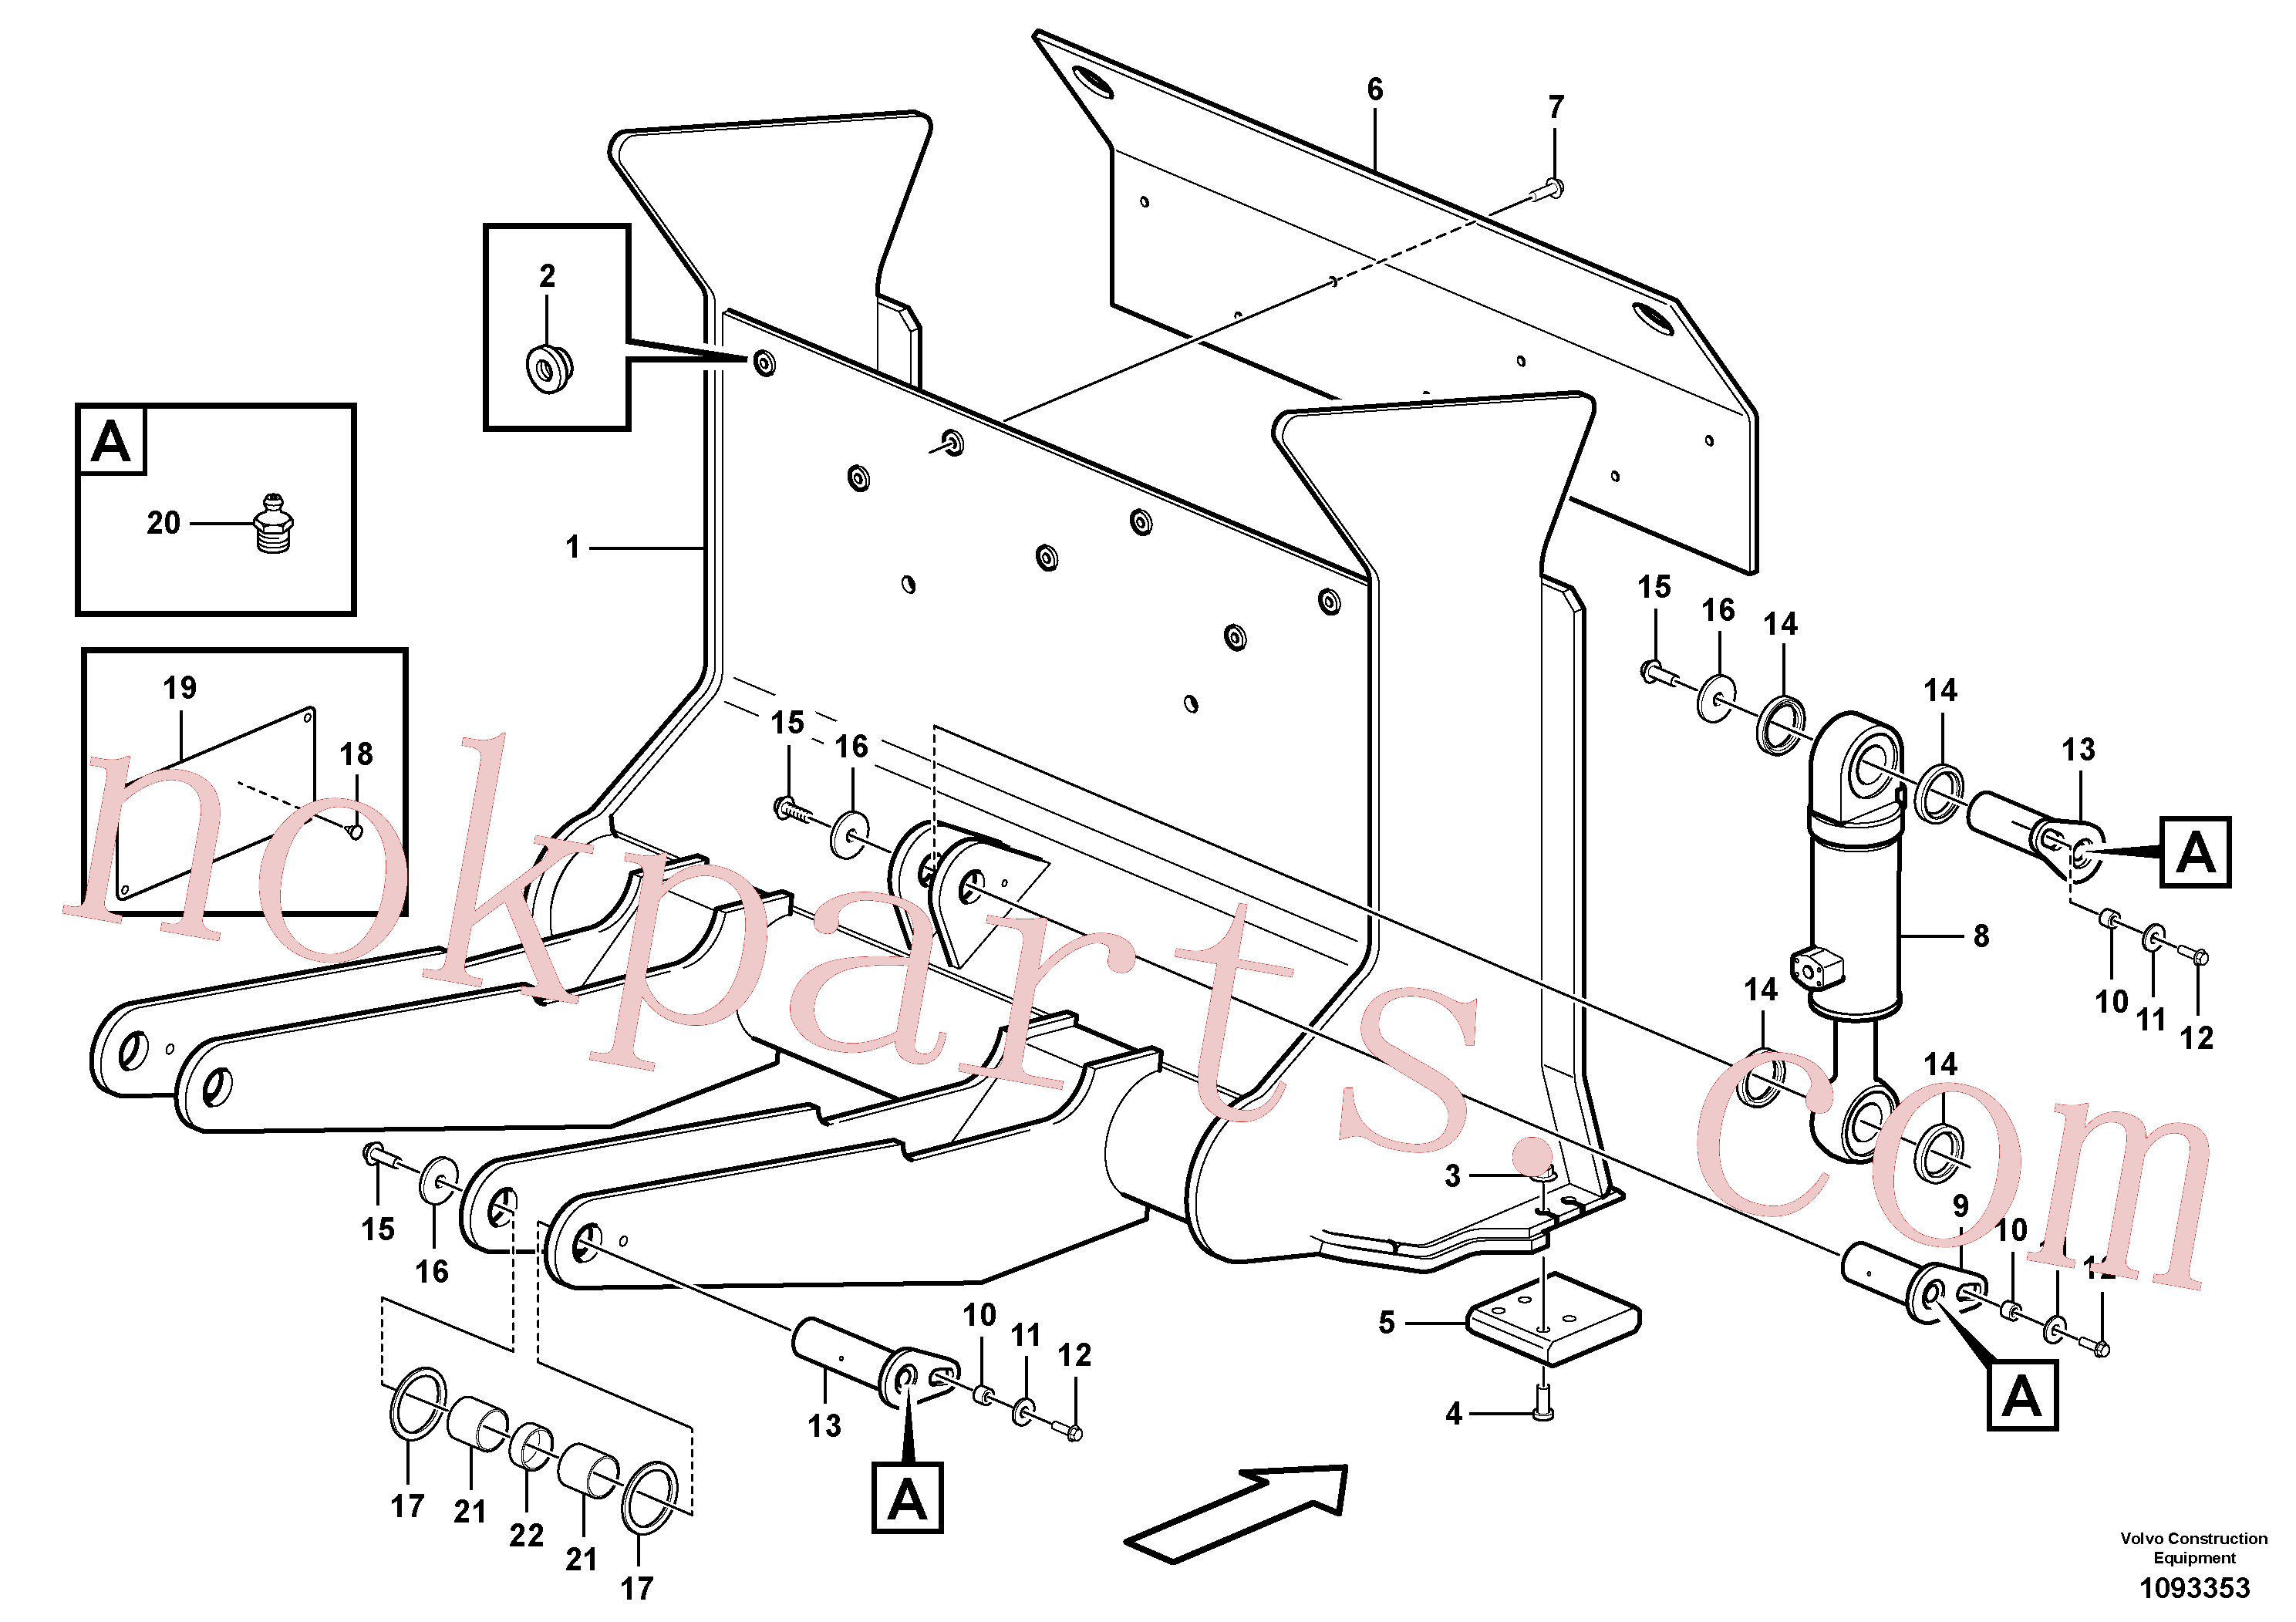 VOE11704121 for Volvo Timber shover(1093353 assembly)